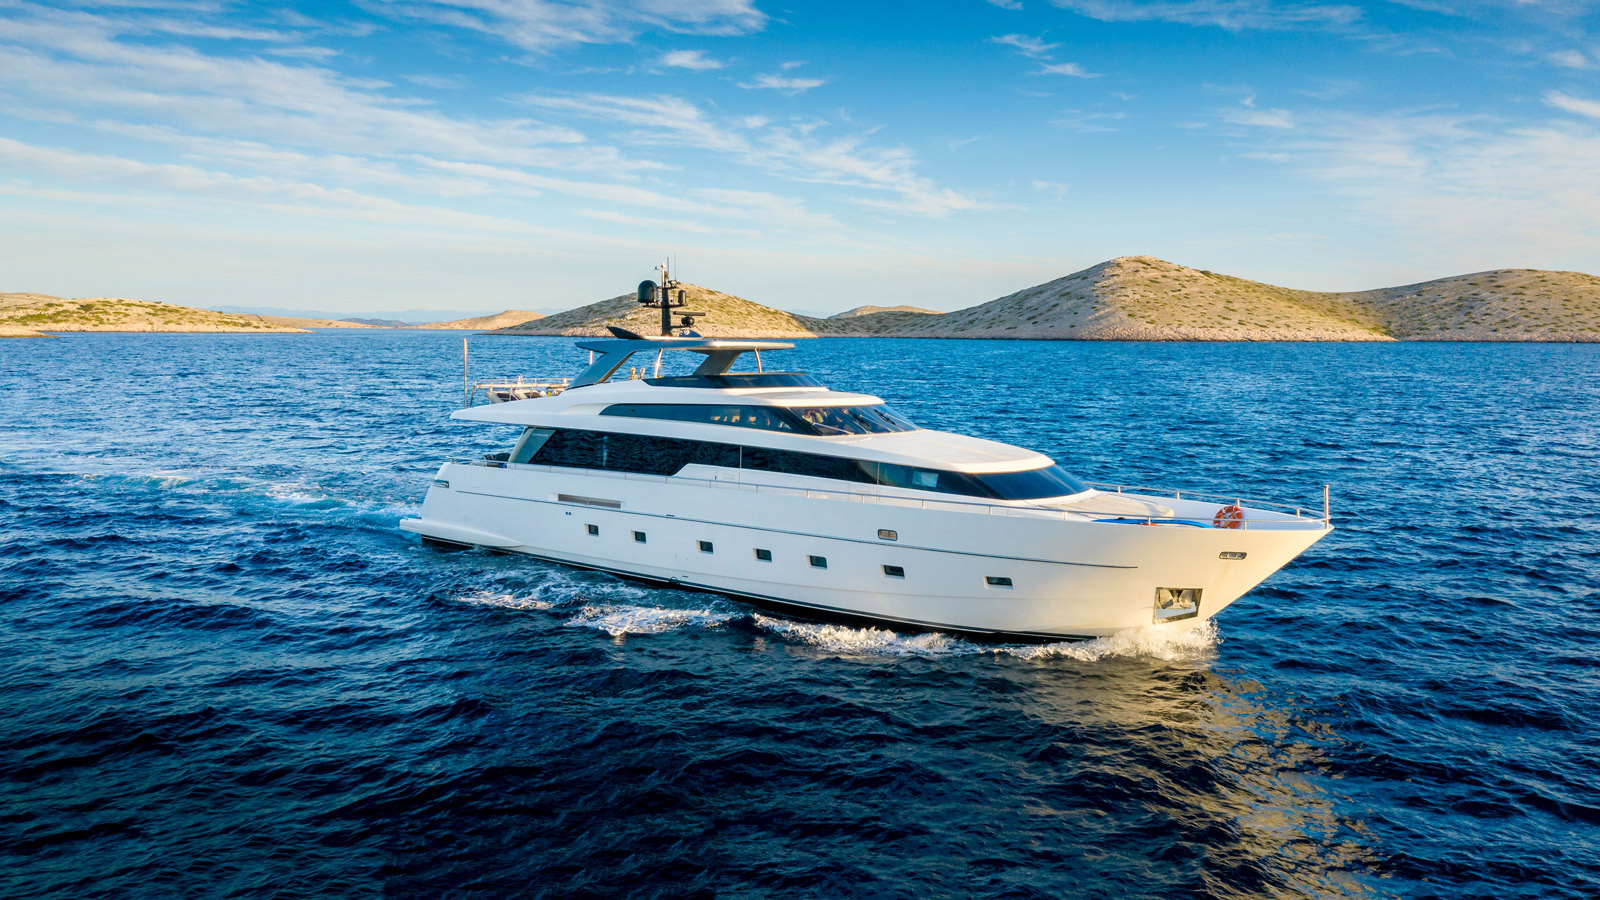 Casa Yacht for Charter - IYC